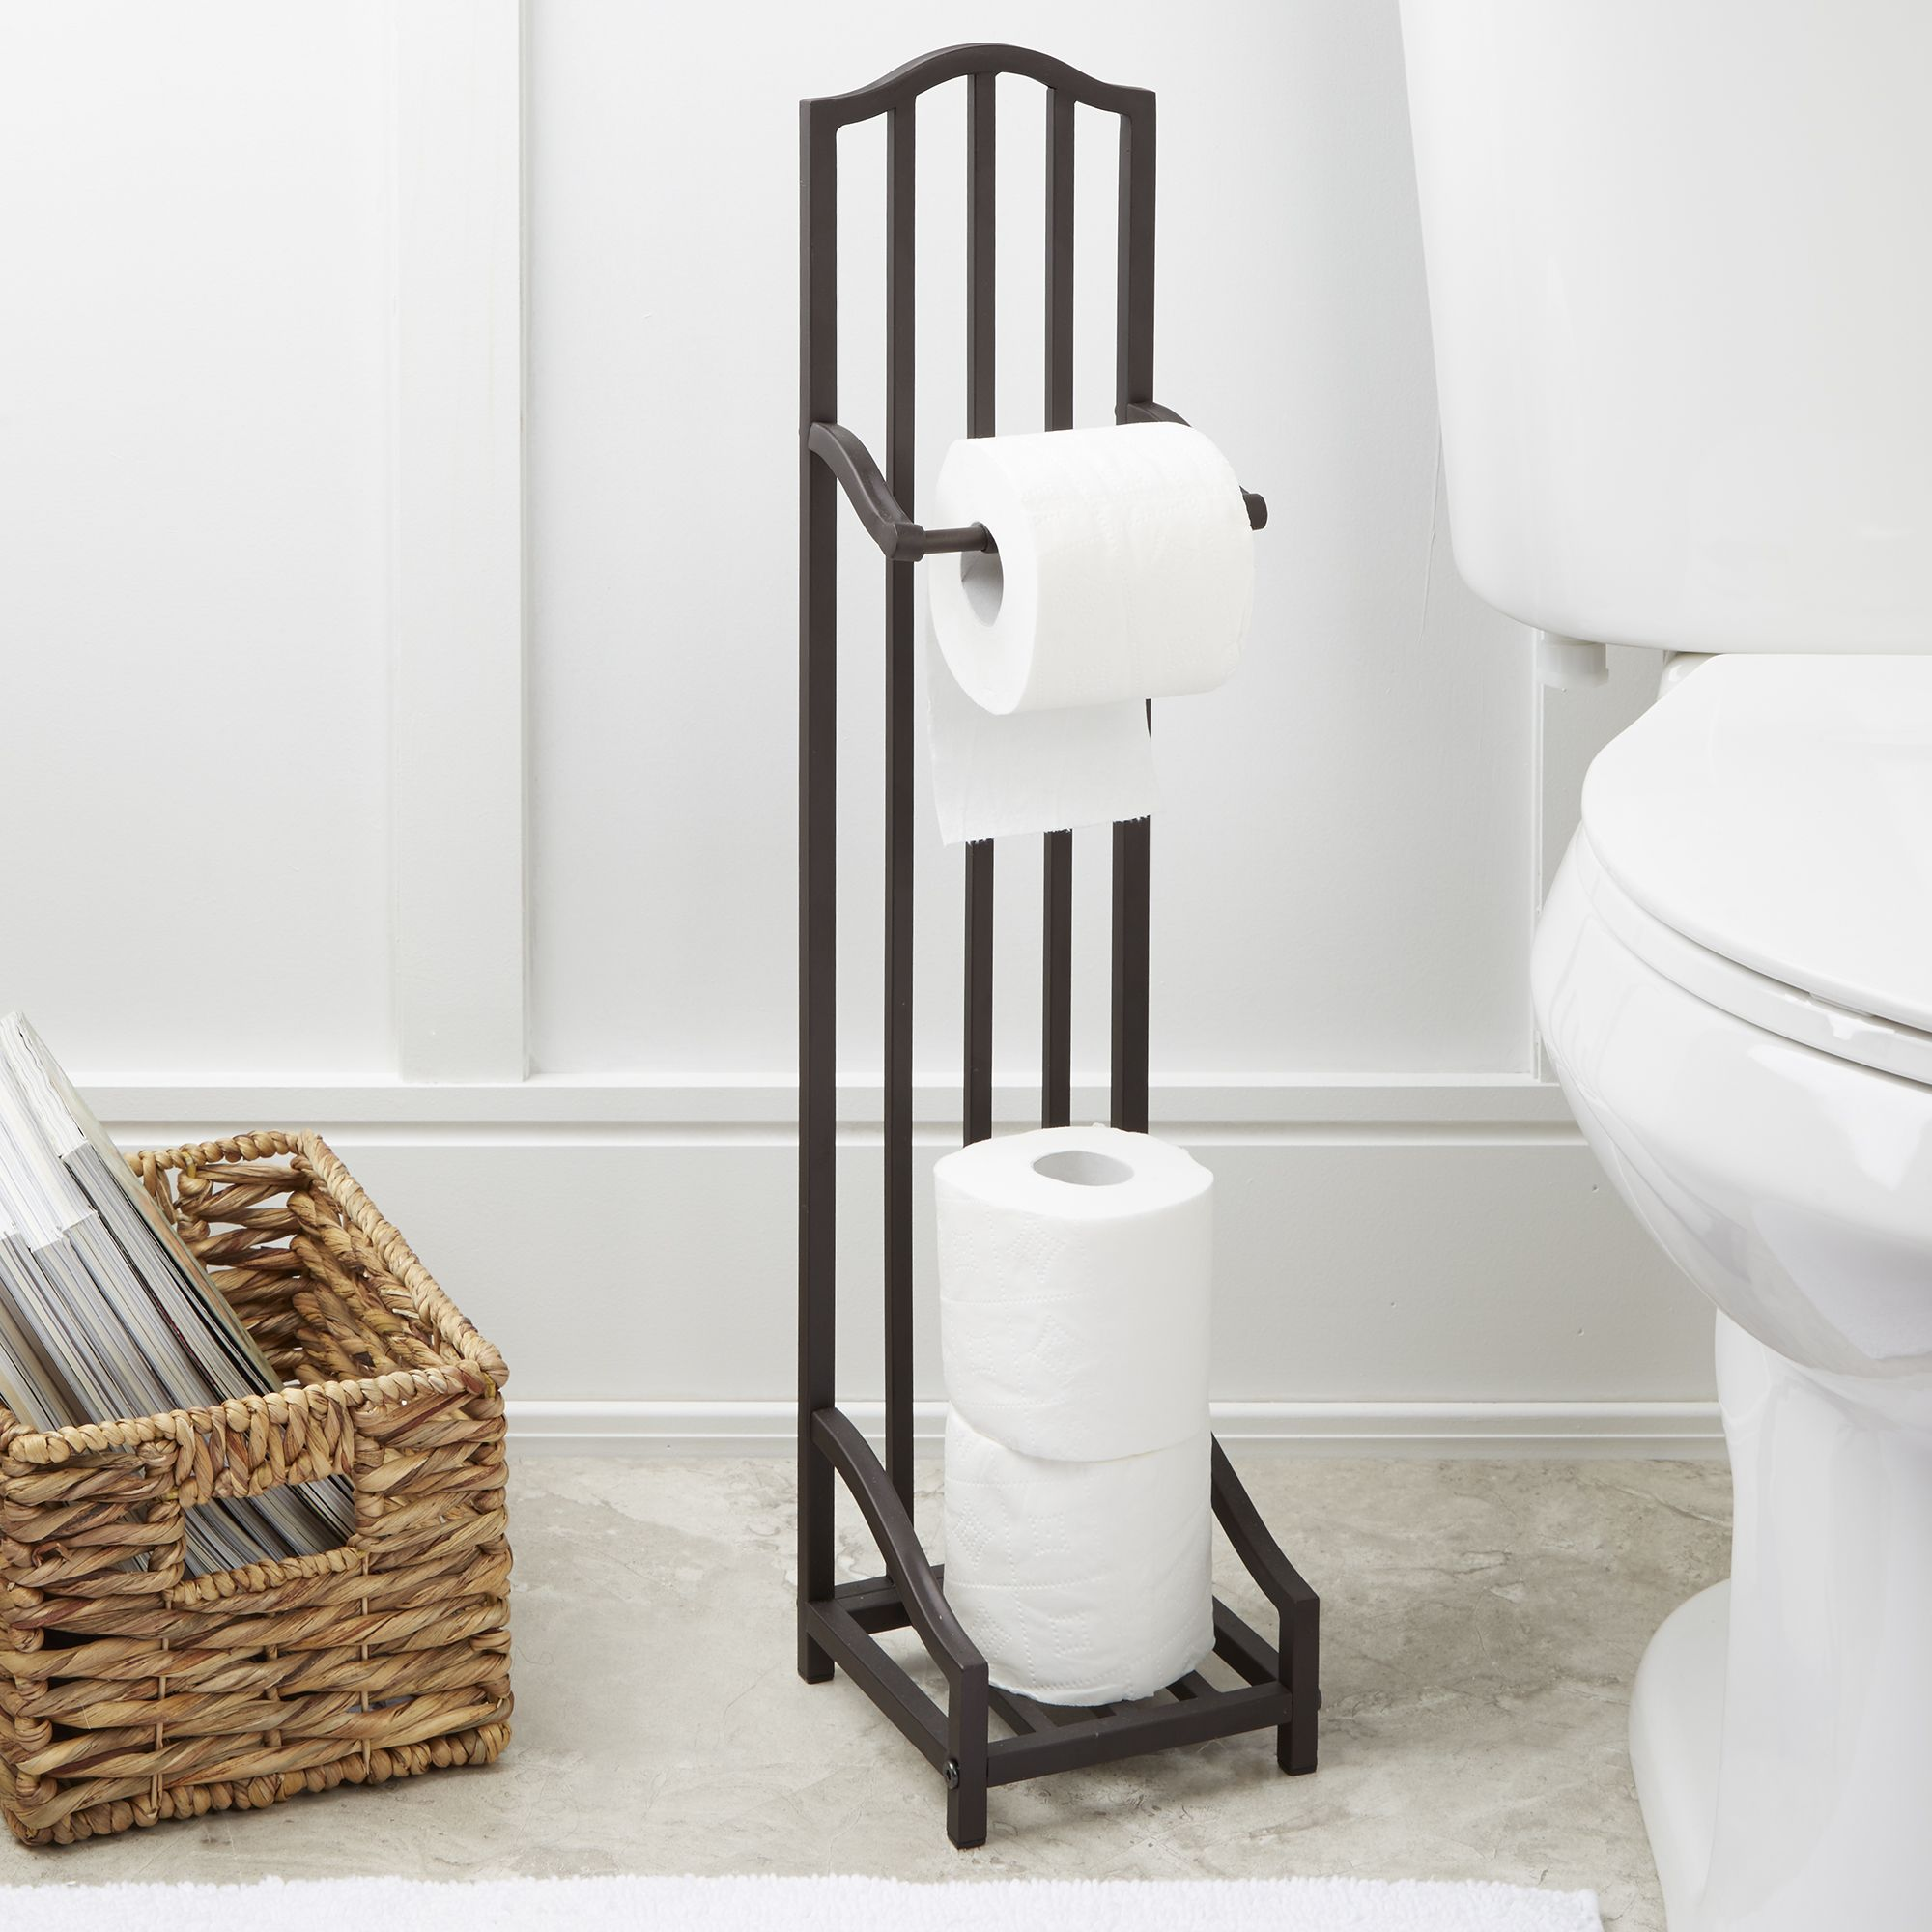 Remarkable Oil Rubbed Bronze Toilet Paper Holder For Modern Bathroom Decoration Ideas Freestanding